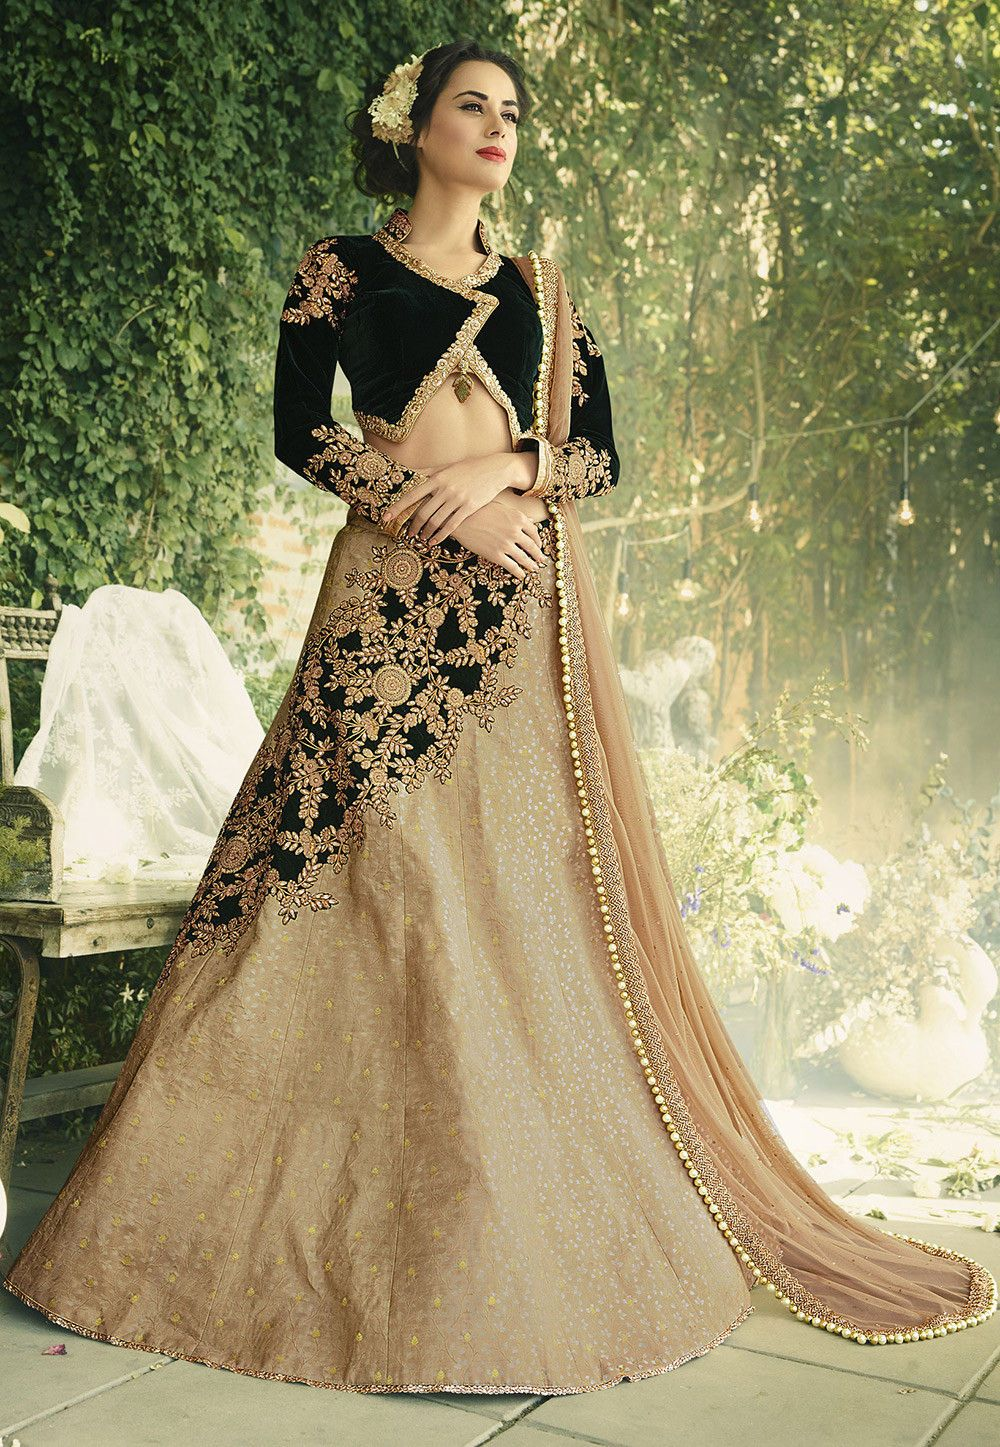 10 Kitchen And Home Decor Items Every 20 Something Needs: Top 10 Weddings Lehenga Designs For Girls 2018